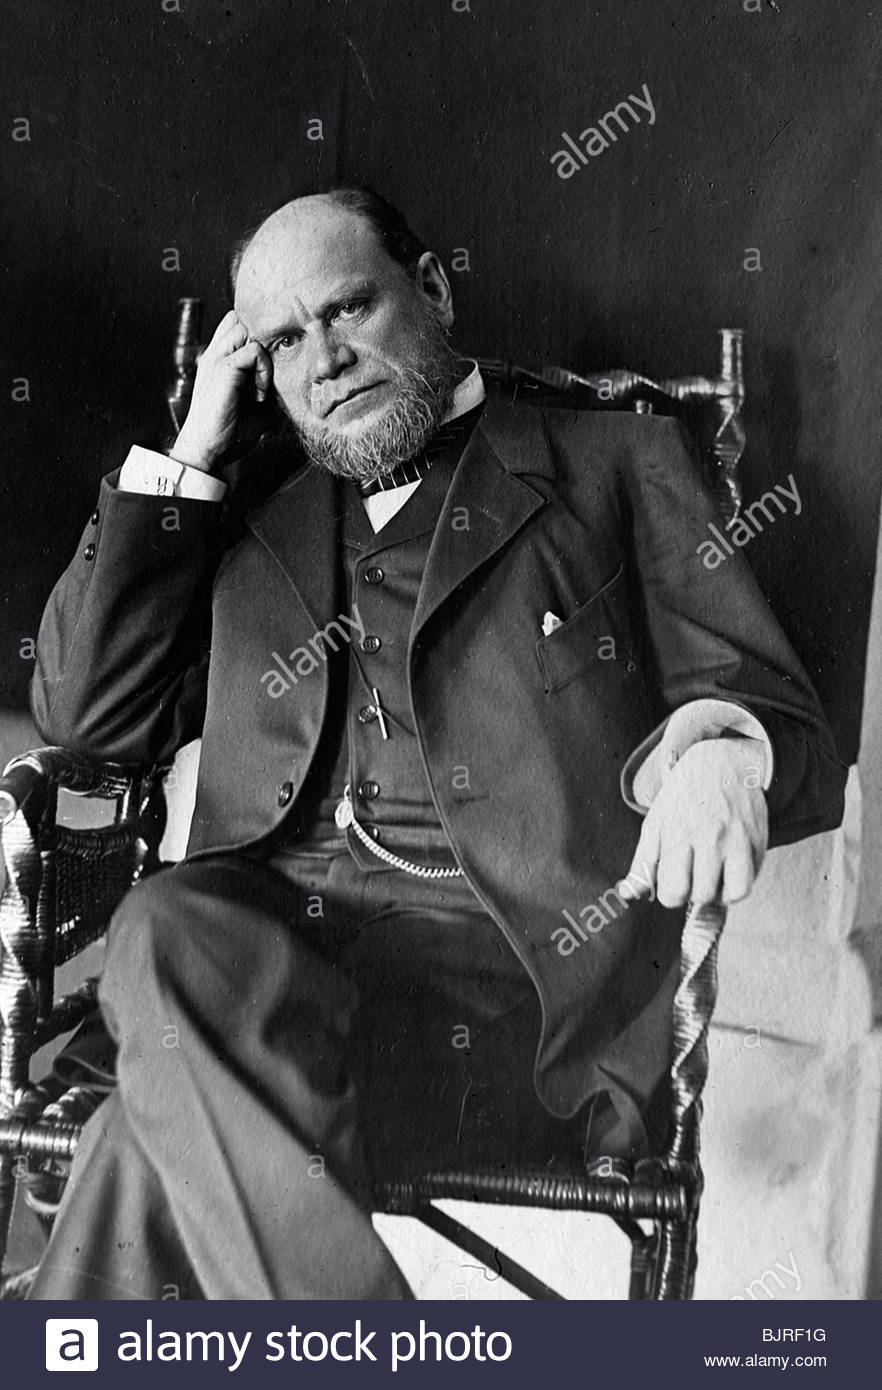 Anatoli Koni, Russian lawyer and author, late 19th or early 20th century. - Stock Image